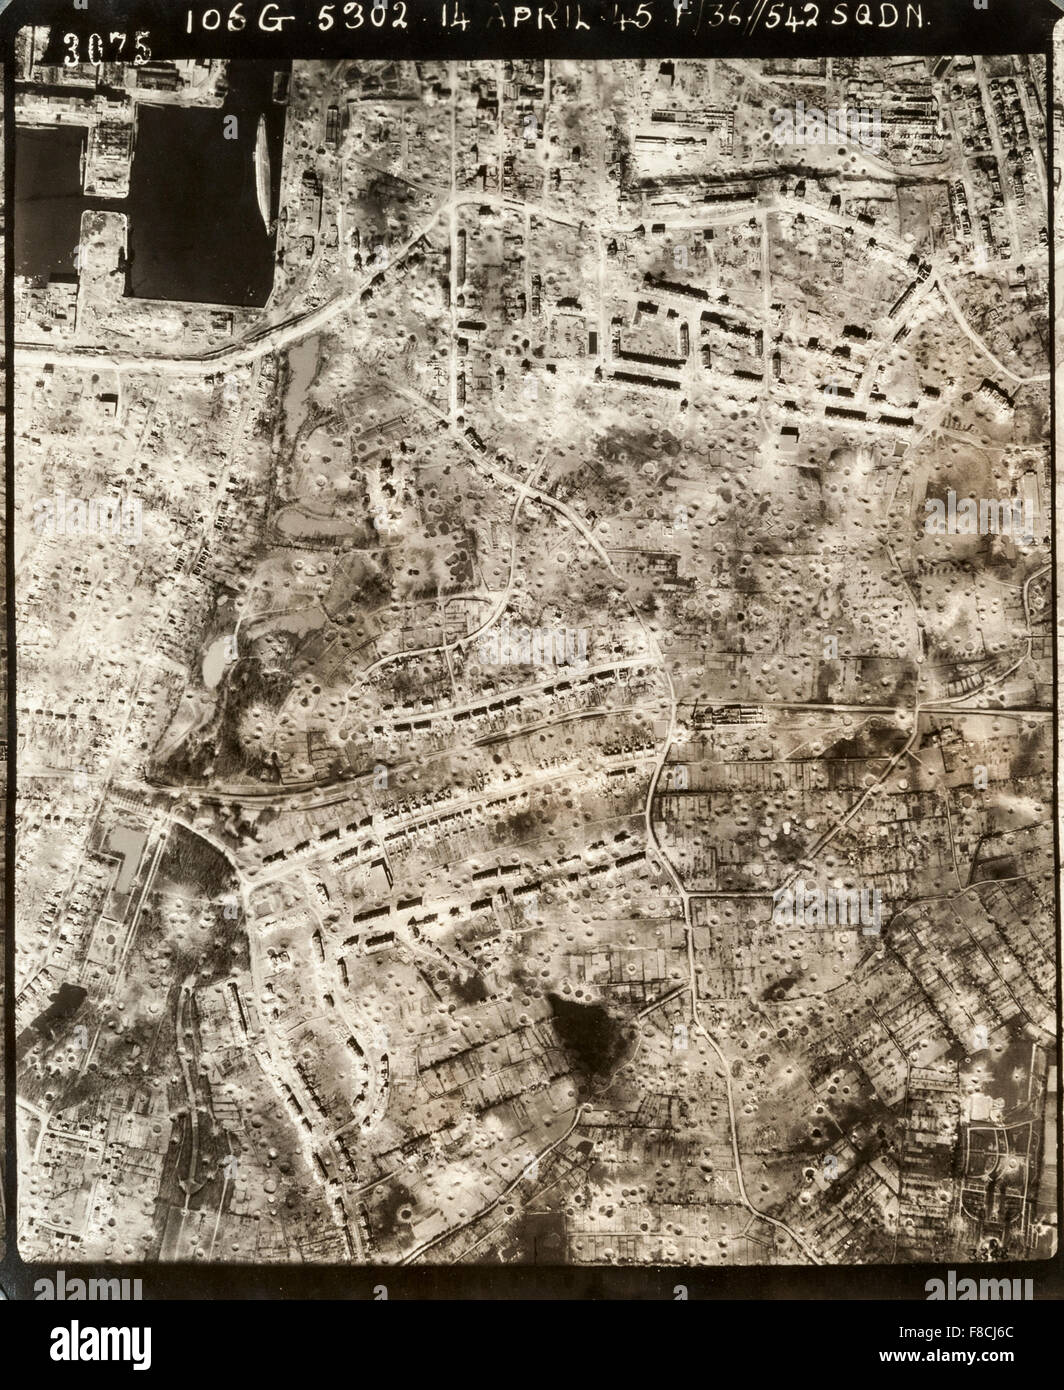 World War II aerial reconnaissance photograph of the port city of Kiel, Germany, showing the results of the massive - Stock Image